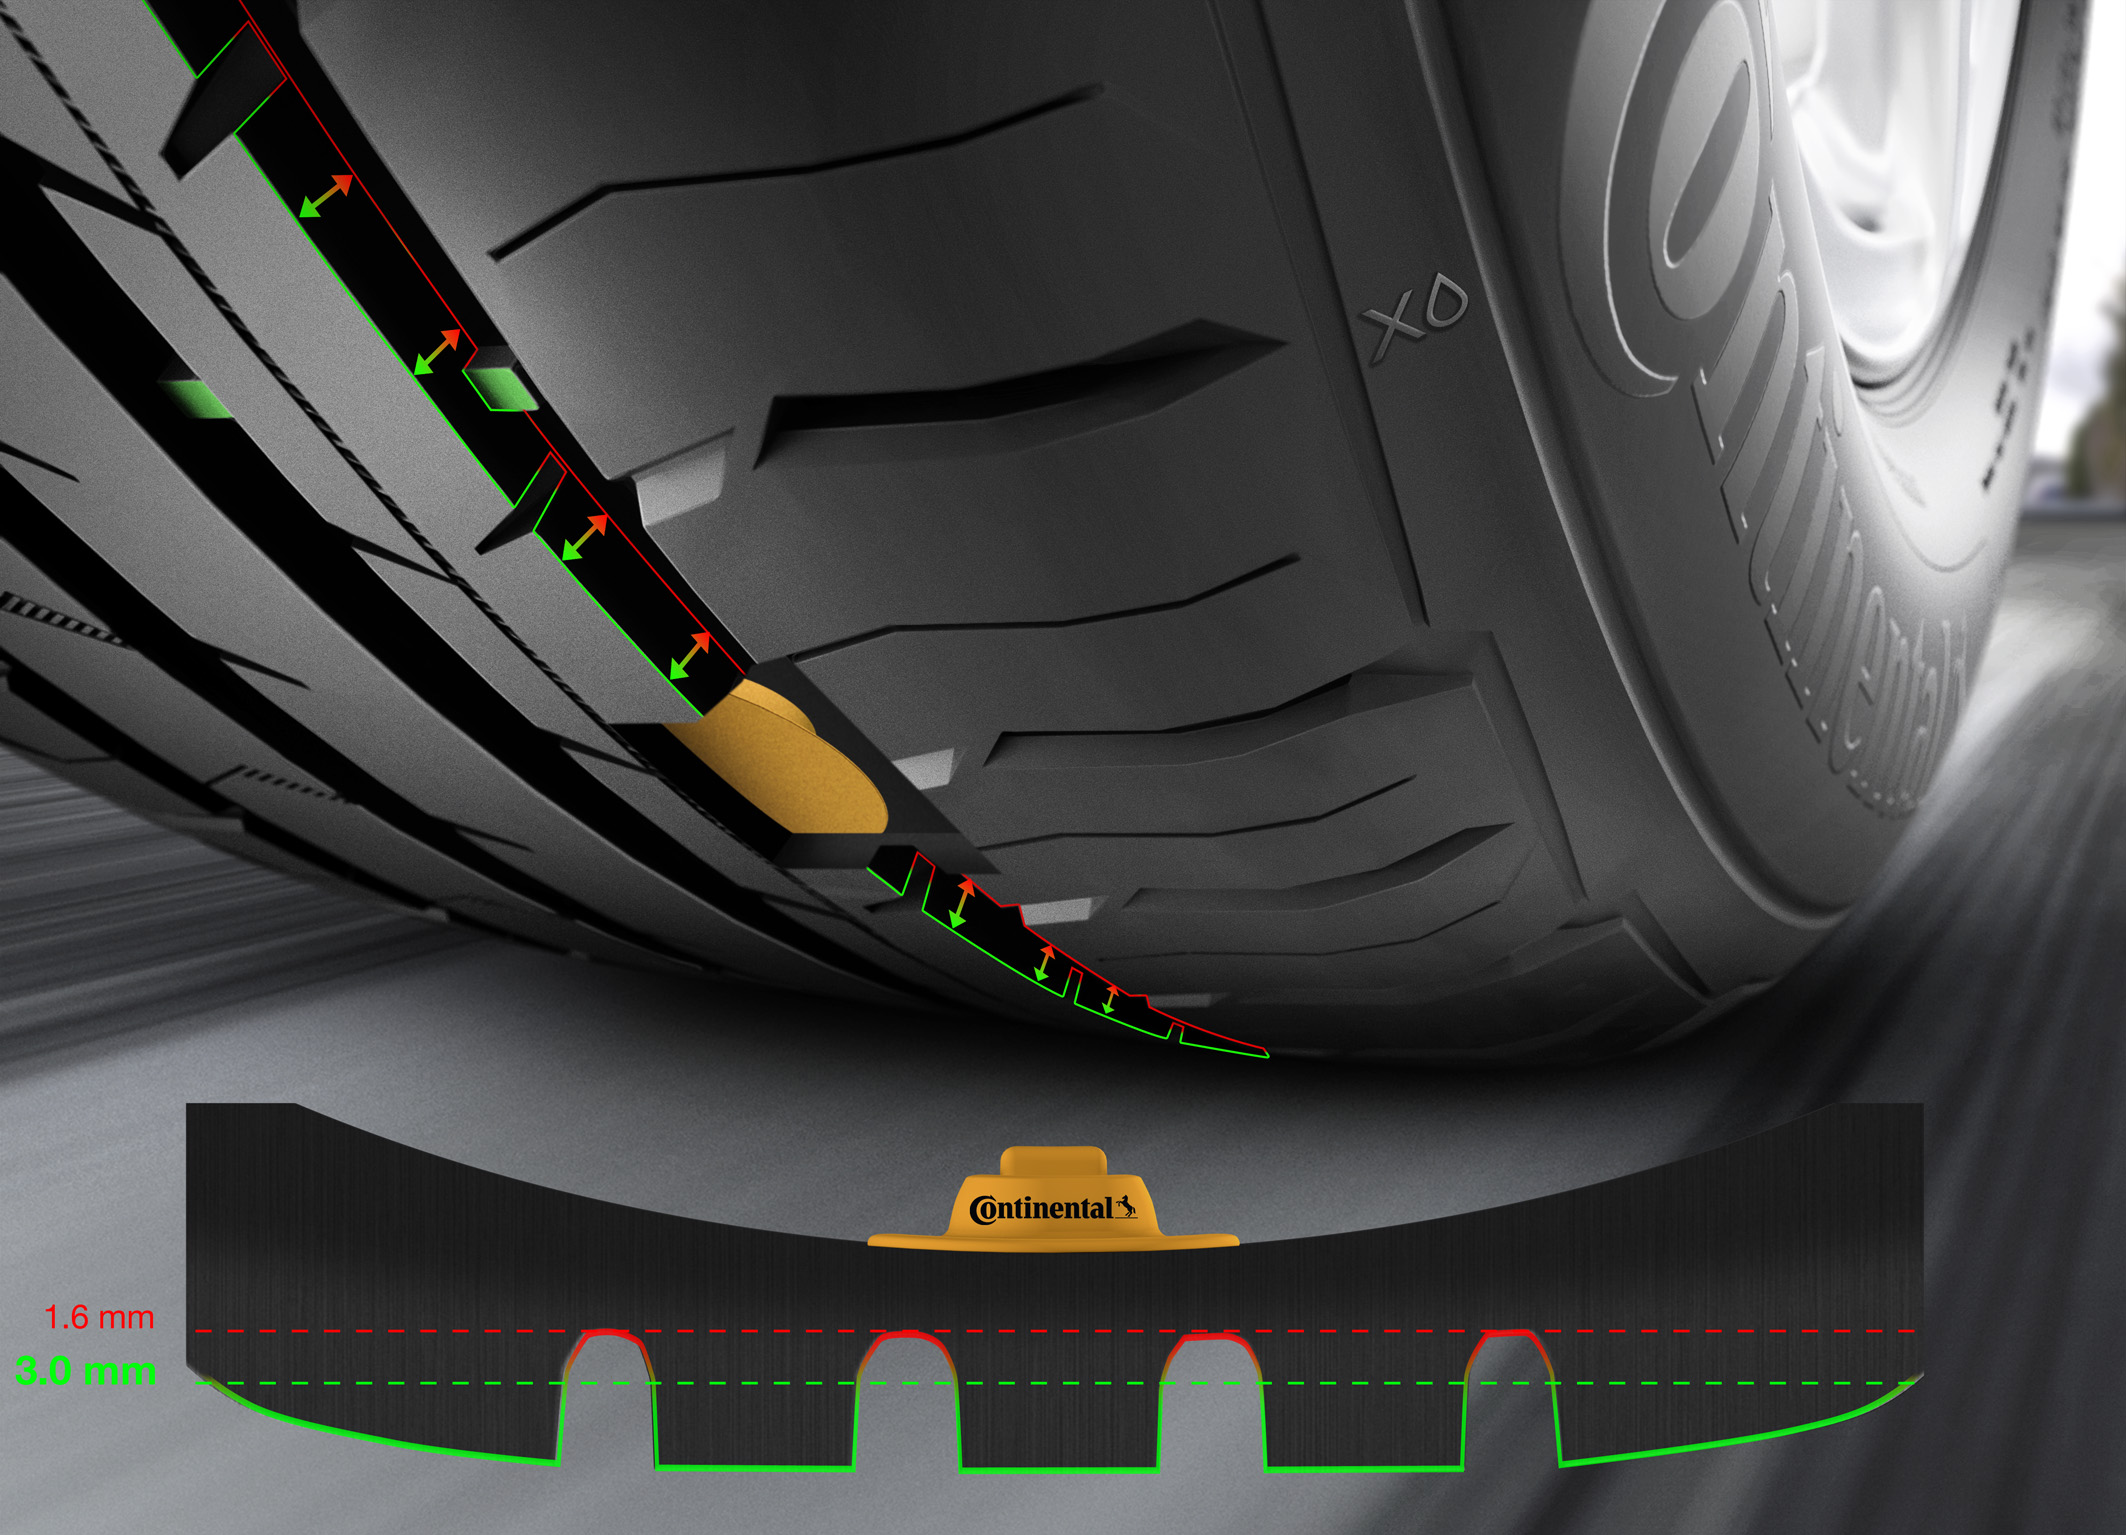 Continental tire pressure monitoring system (TPMS)